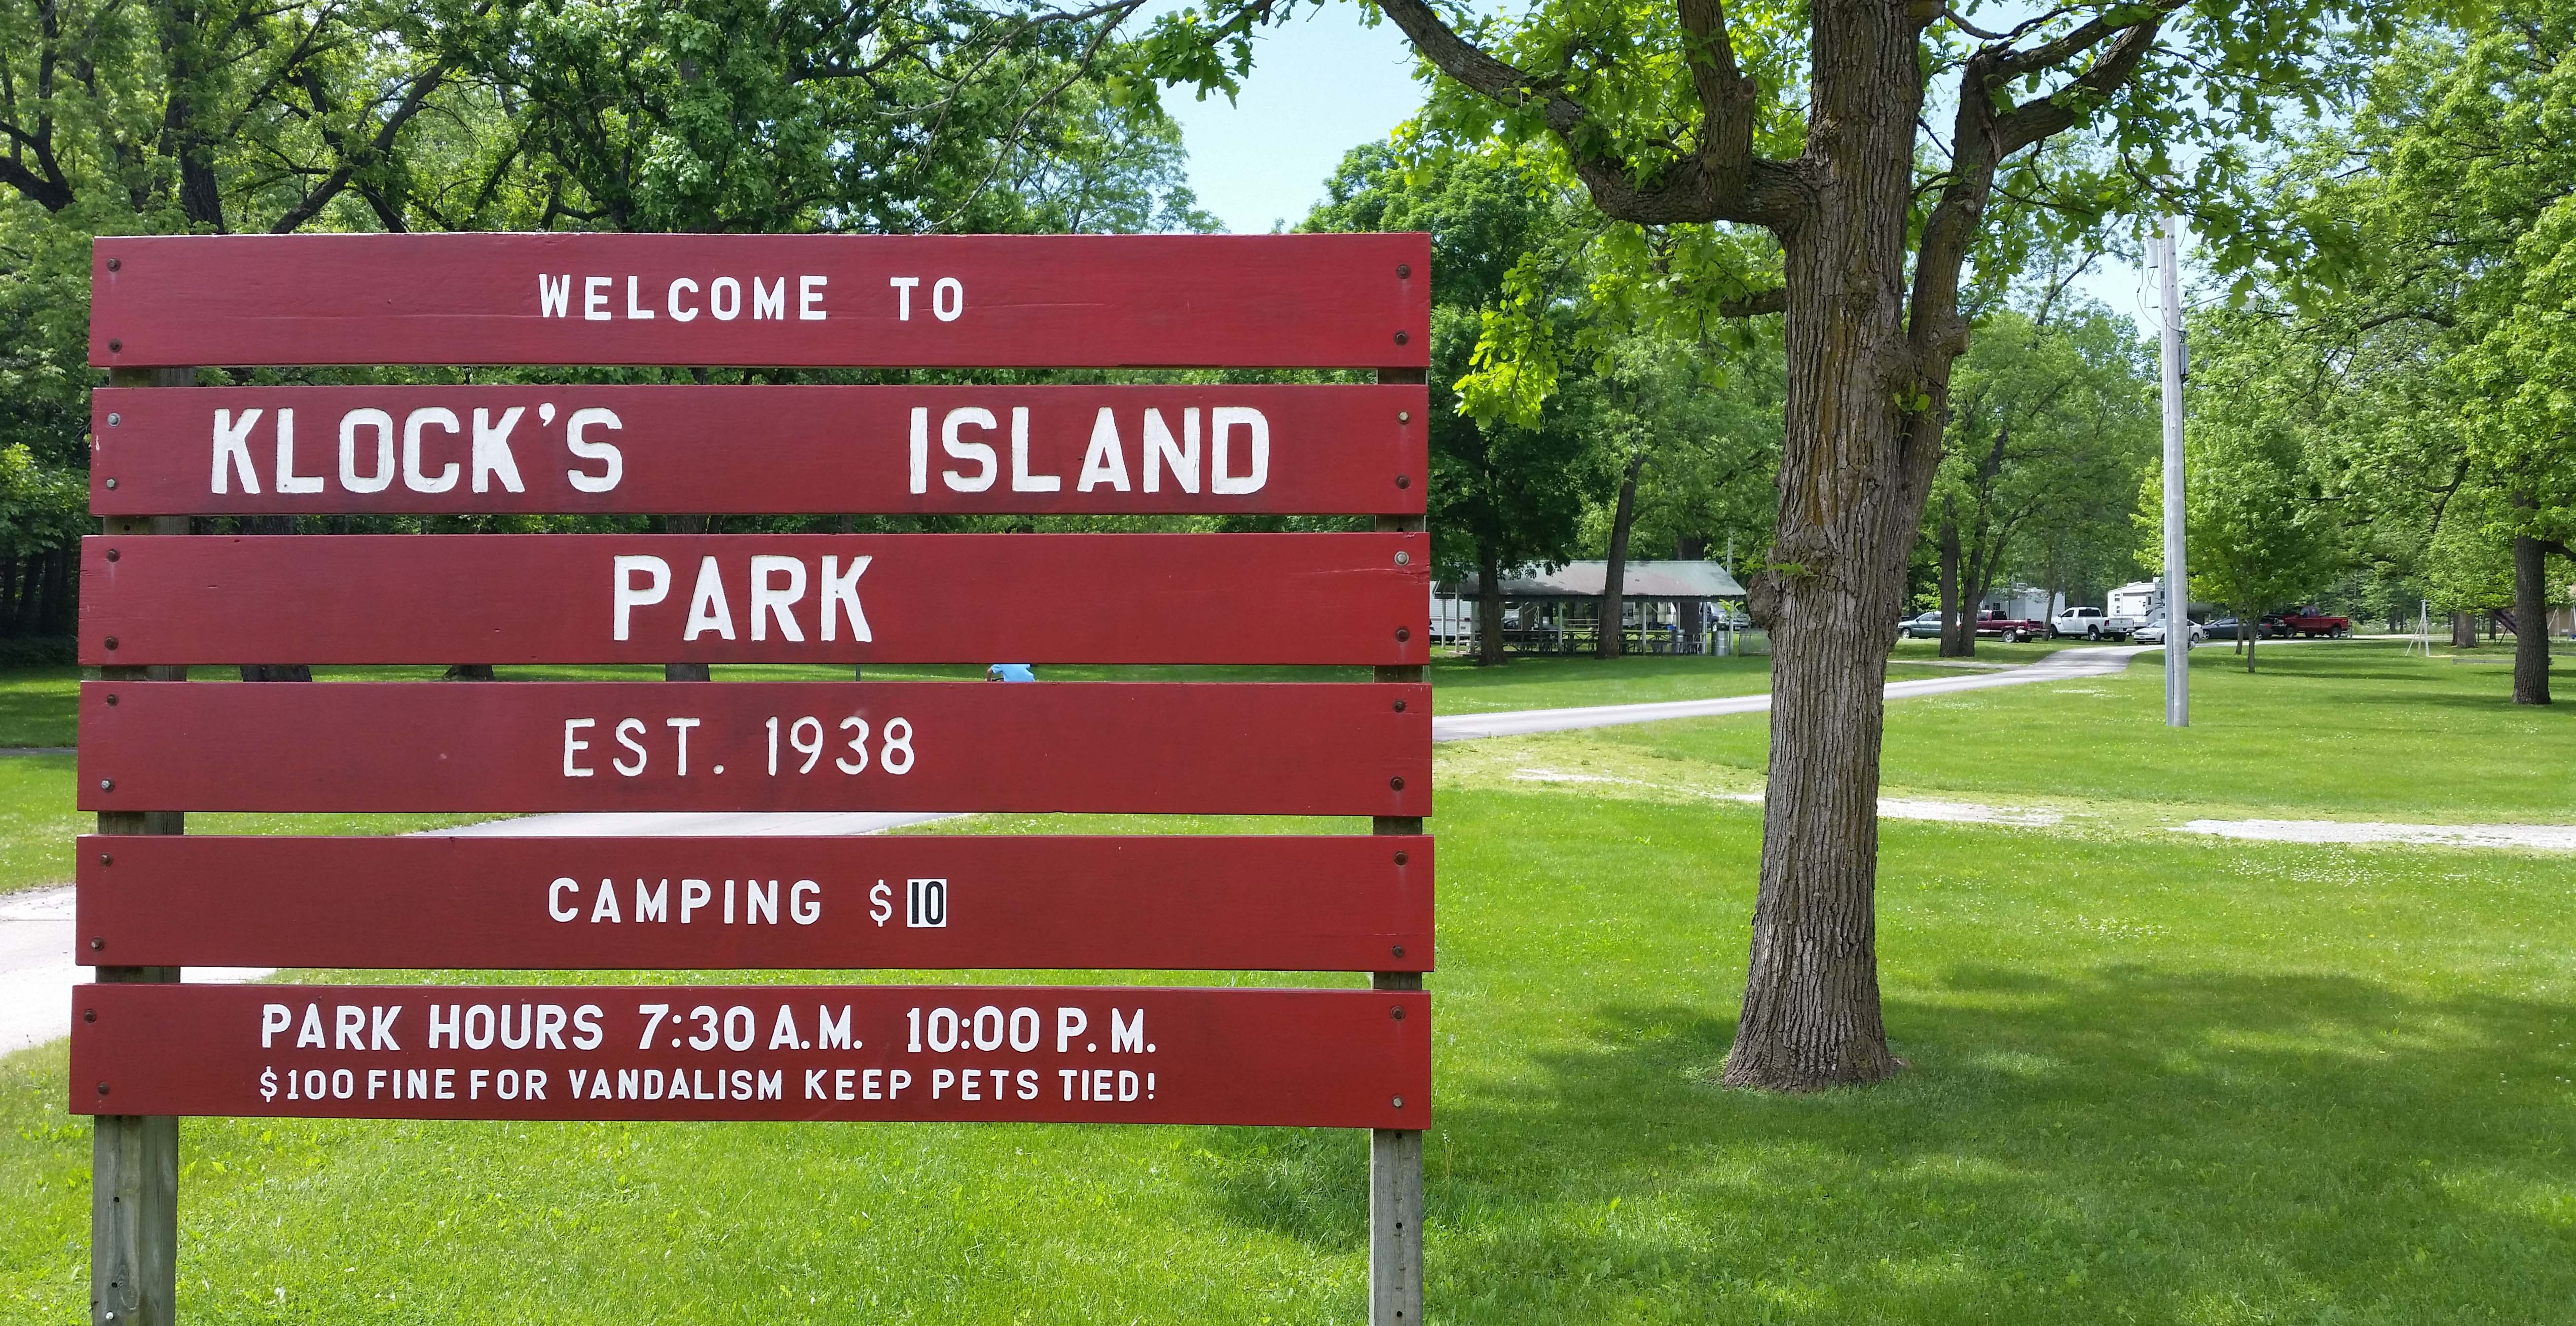 Klock's Island Park & Campground Now Open After Flood